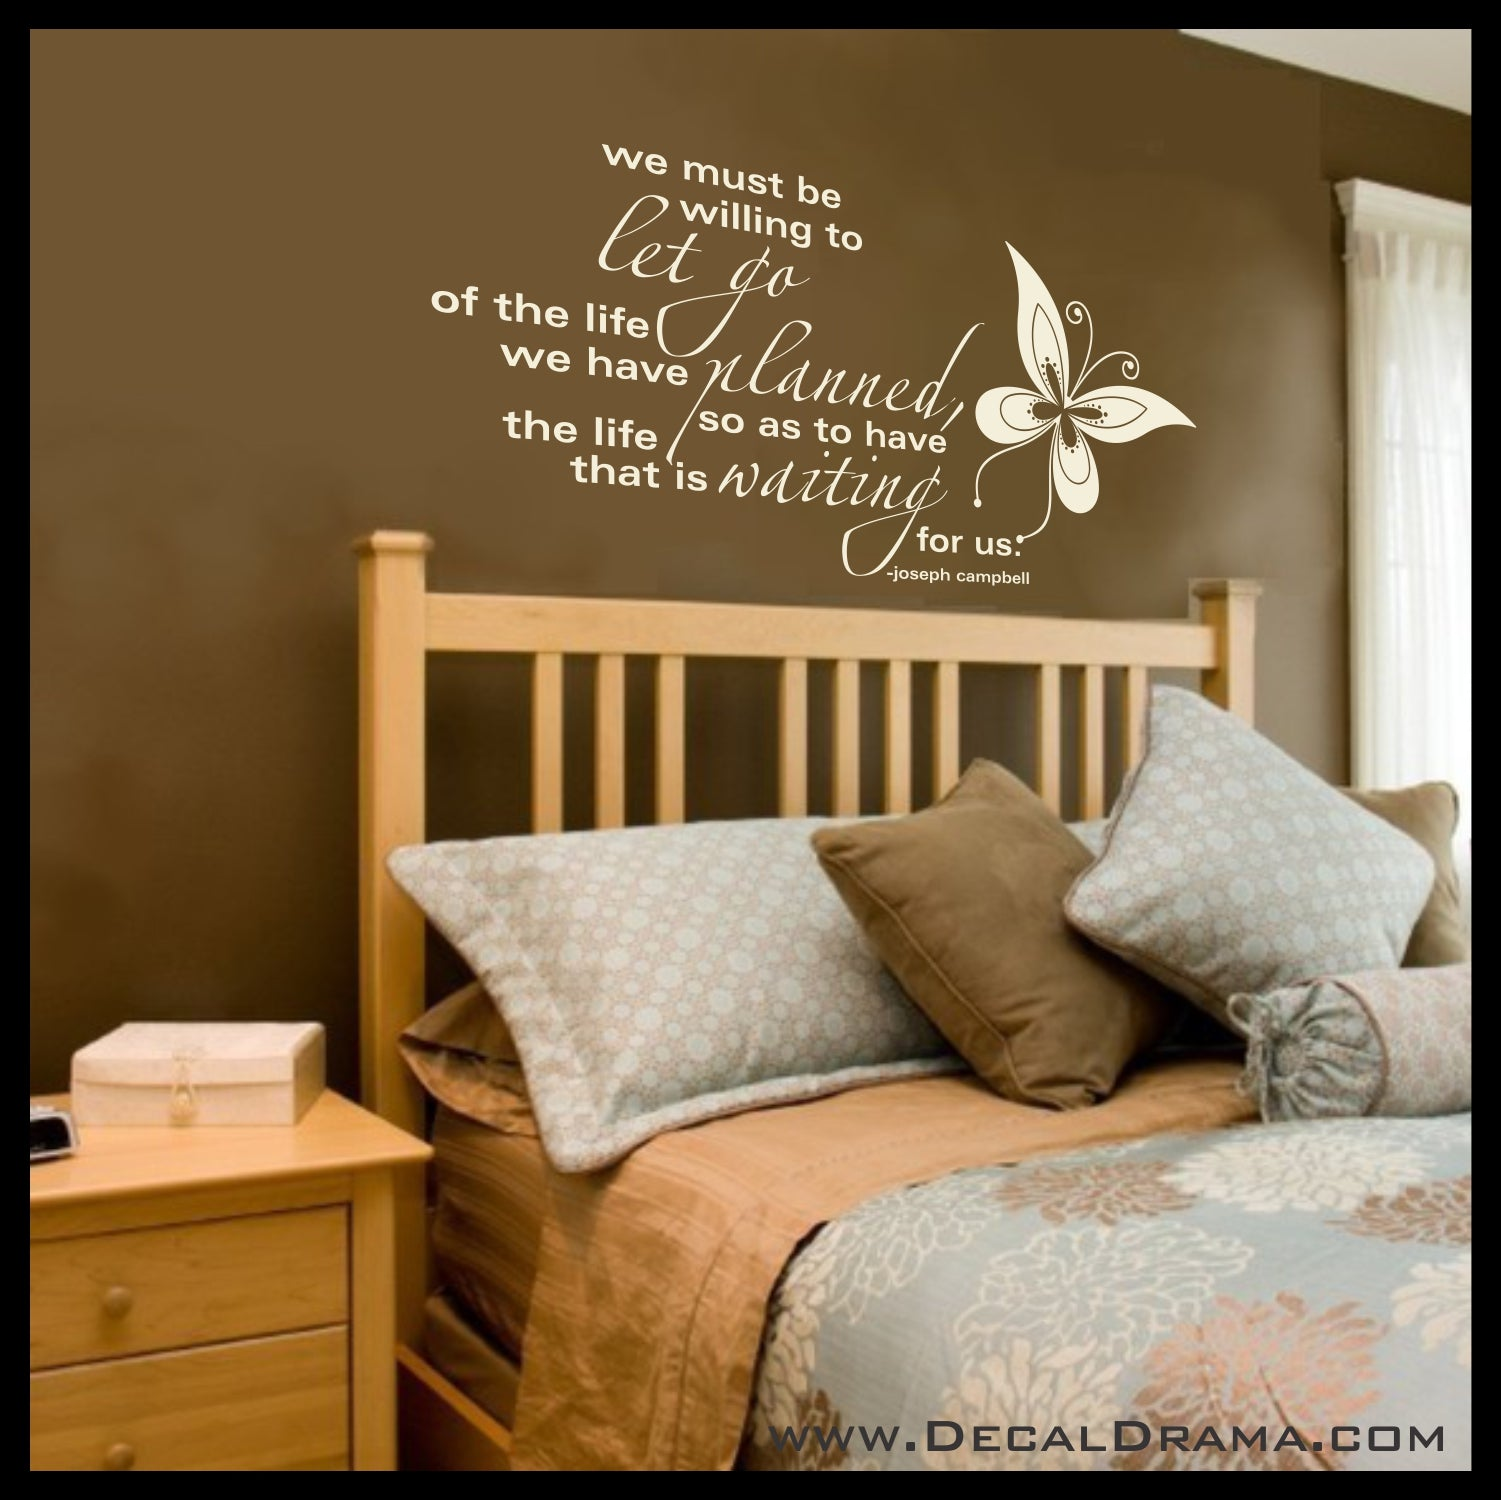 We Must Be Willing to Let Go of the Life We have Planned, Vinyl Wall Decal